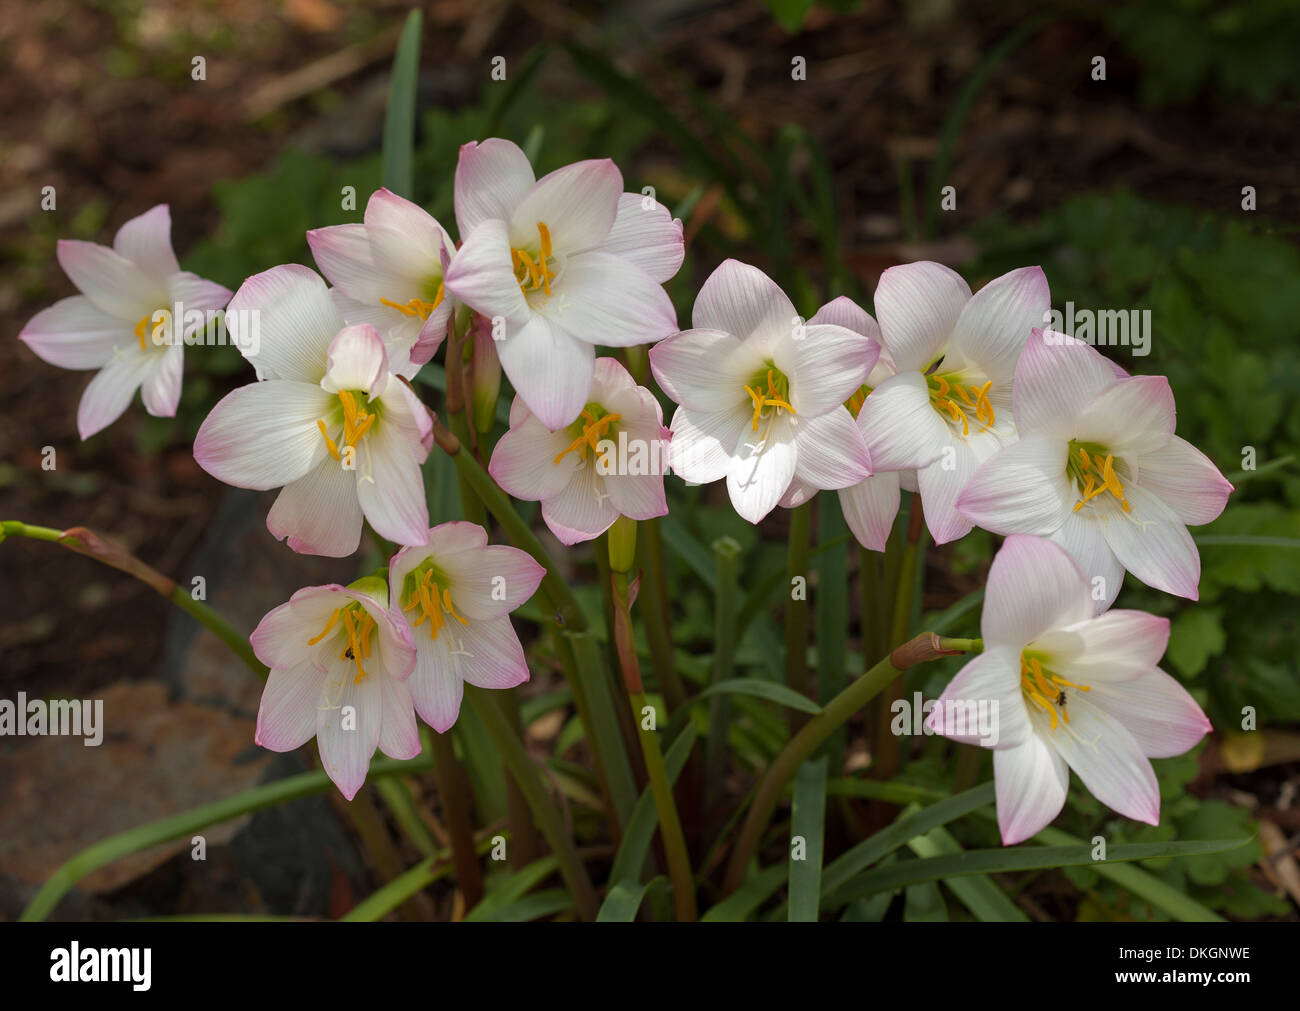 Cluster of pink and white flowers and dark green leaves of cluster of pink and white flowers and dark green leaves of habranthus robustus rain lily spring summer flowering bulbs mightylinksfo